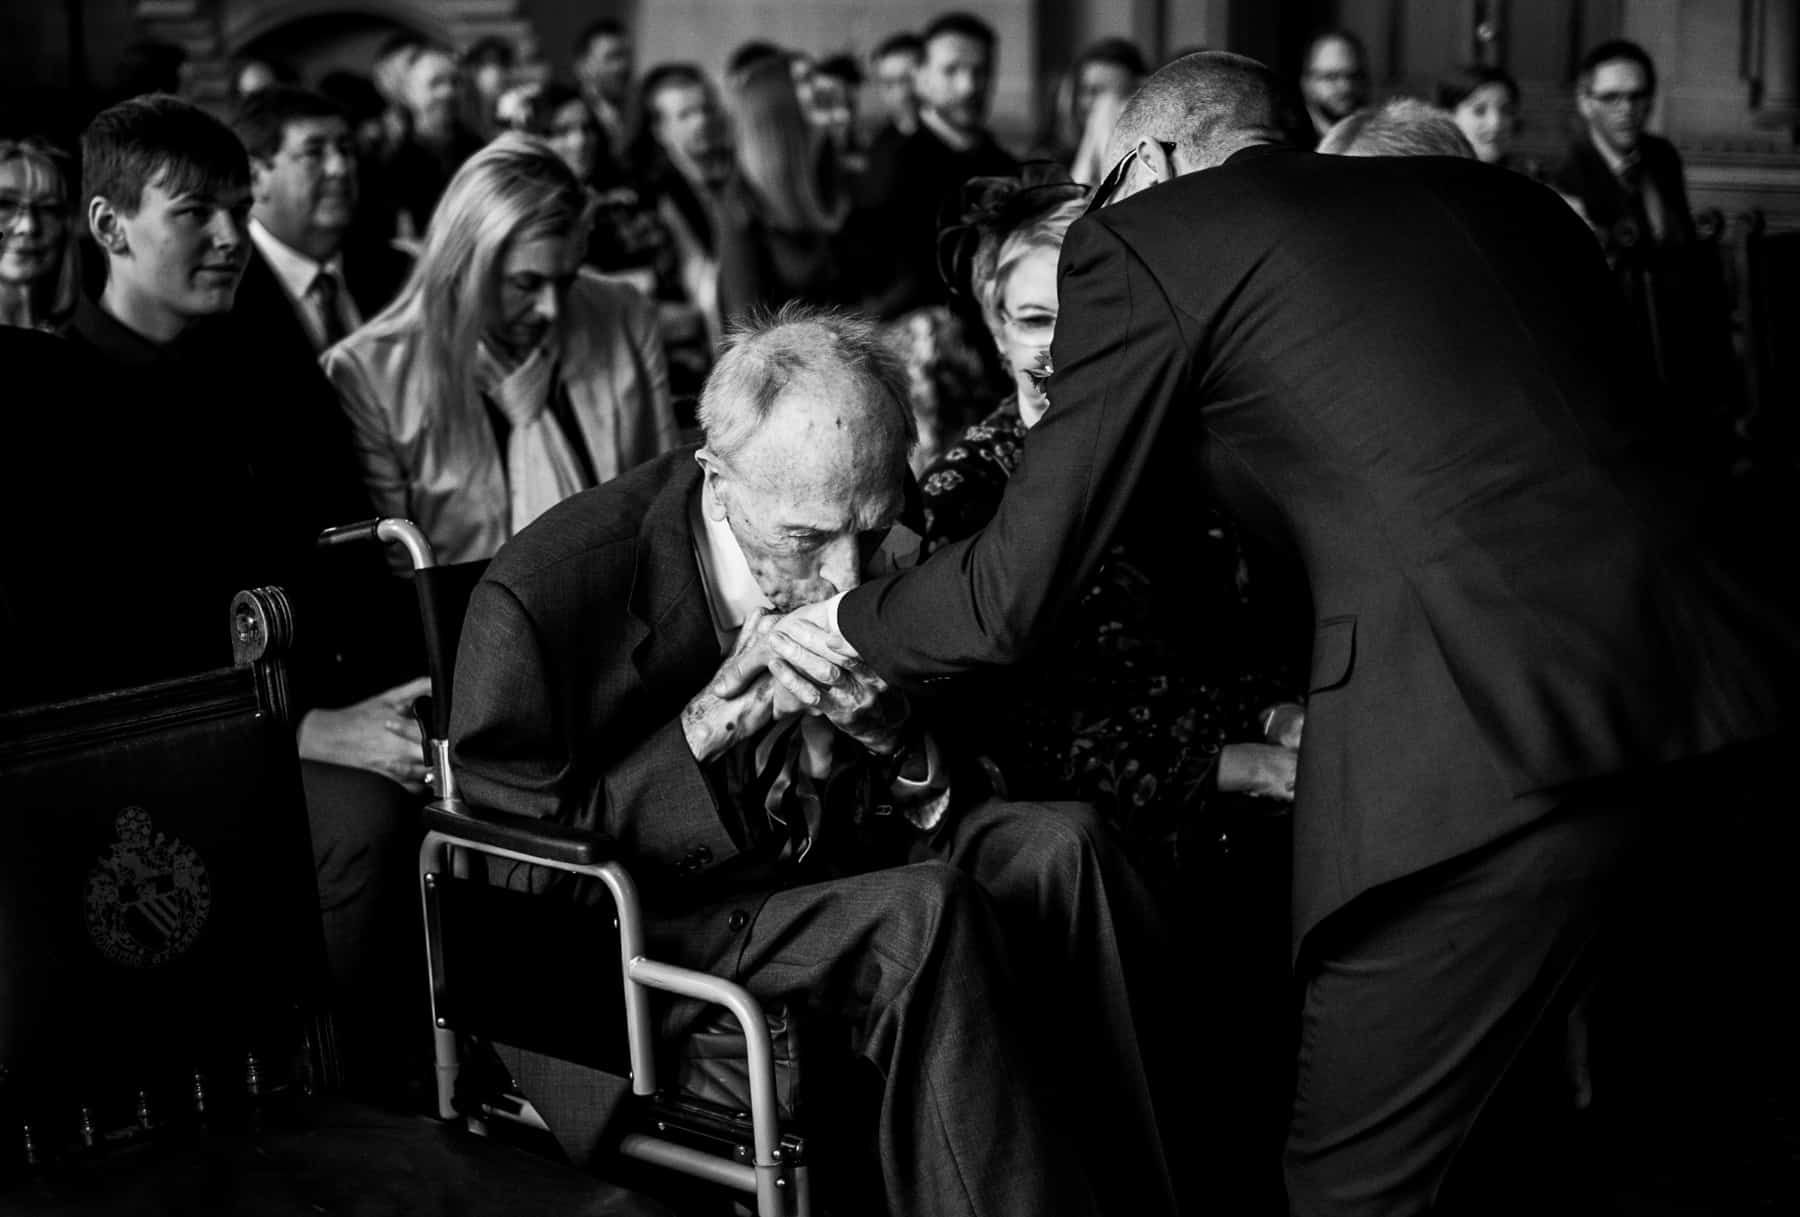 Grandfather kisses grooms hand